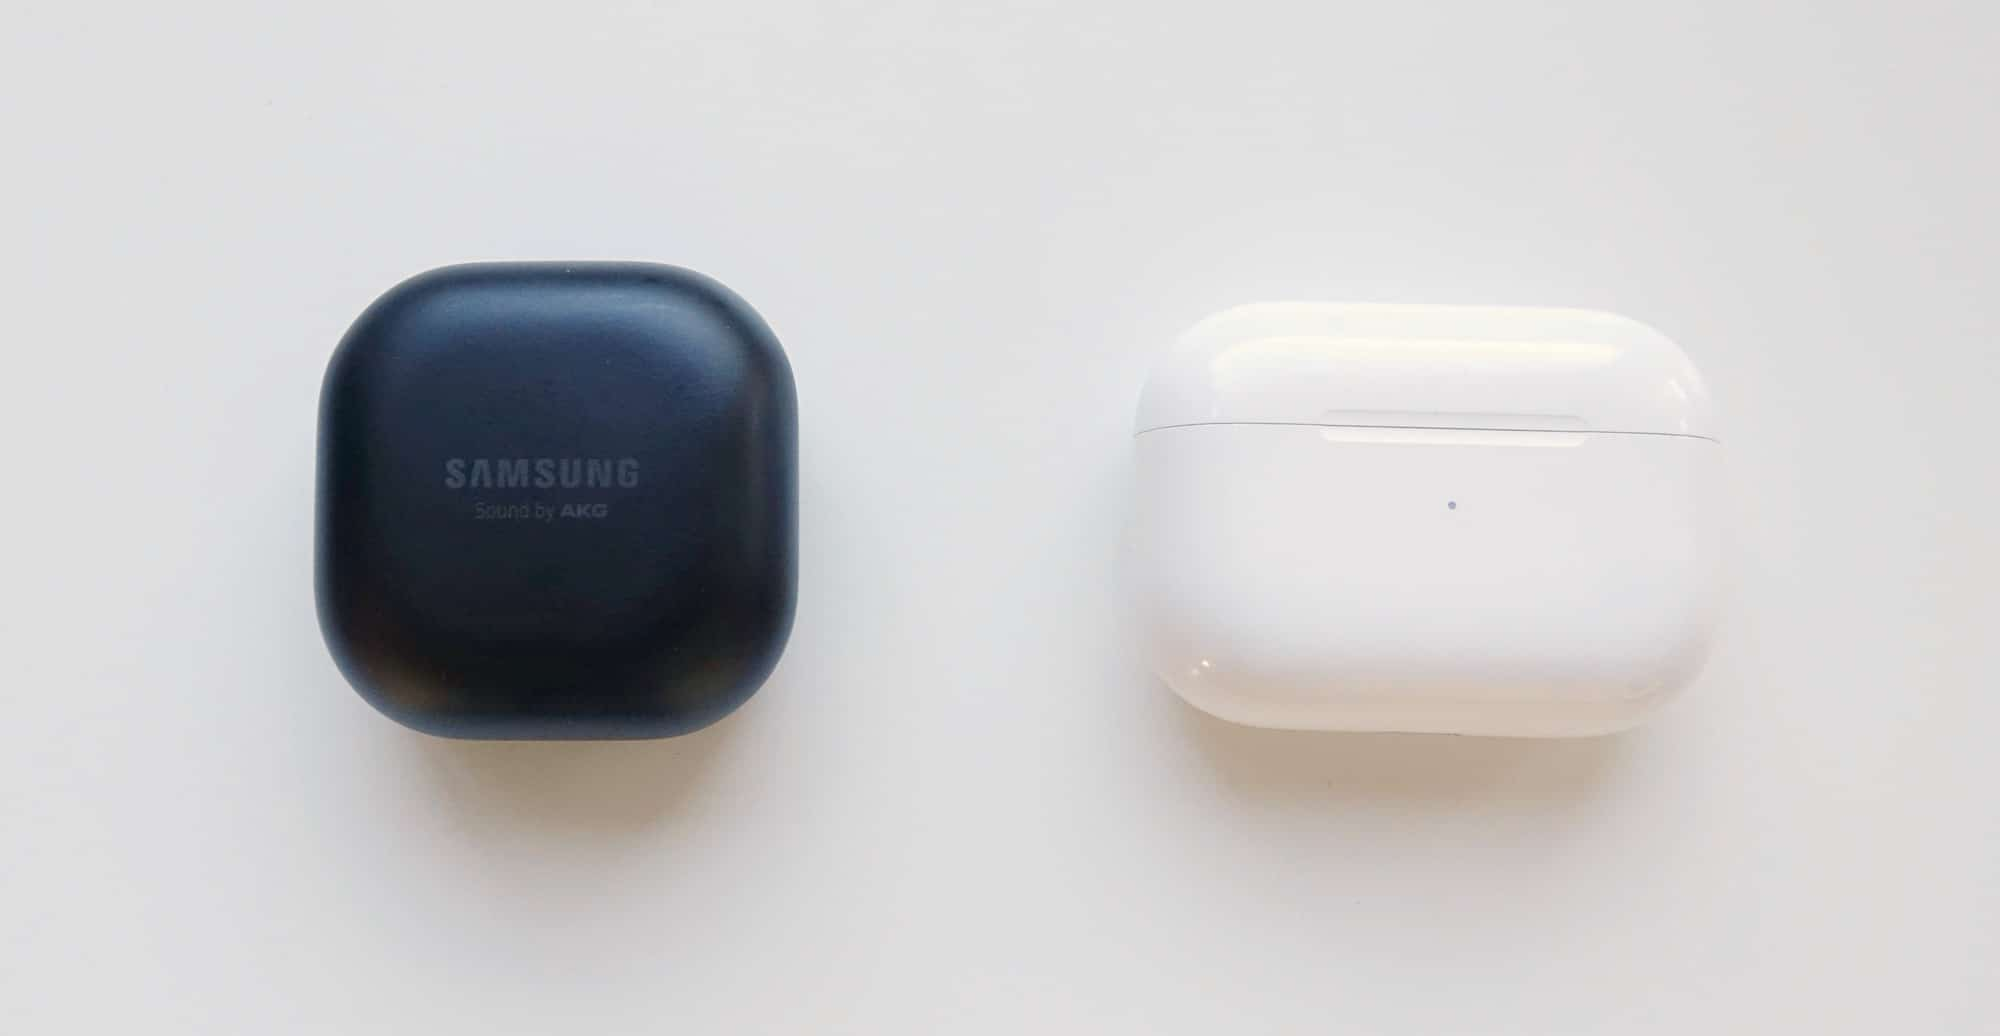 Samsung Galaxy Buds Pro (left) vs Apple AirPods Pro (right)